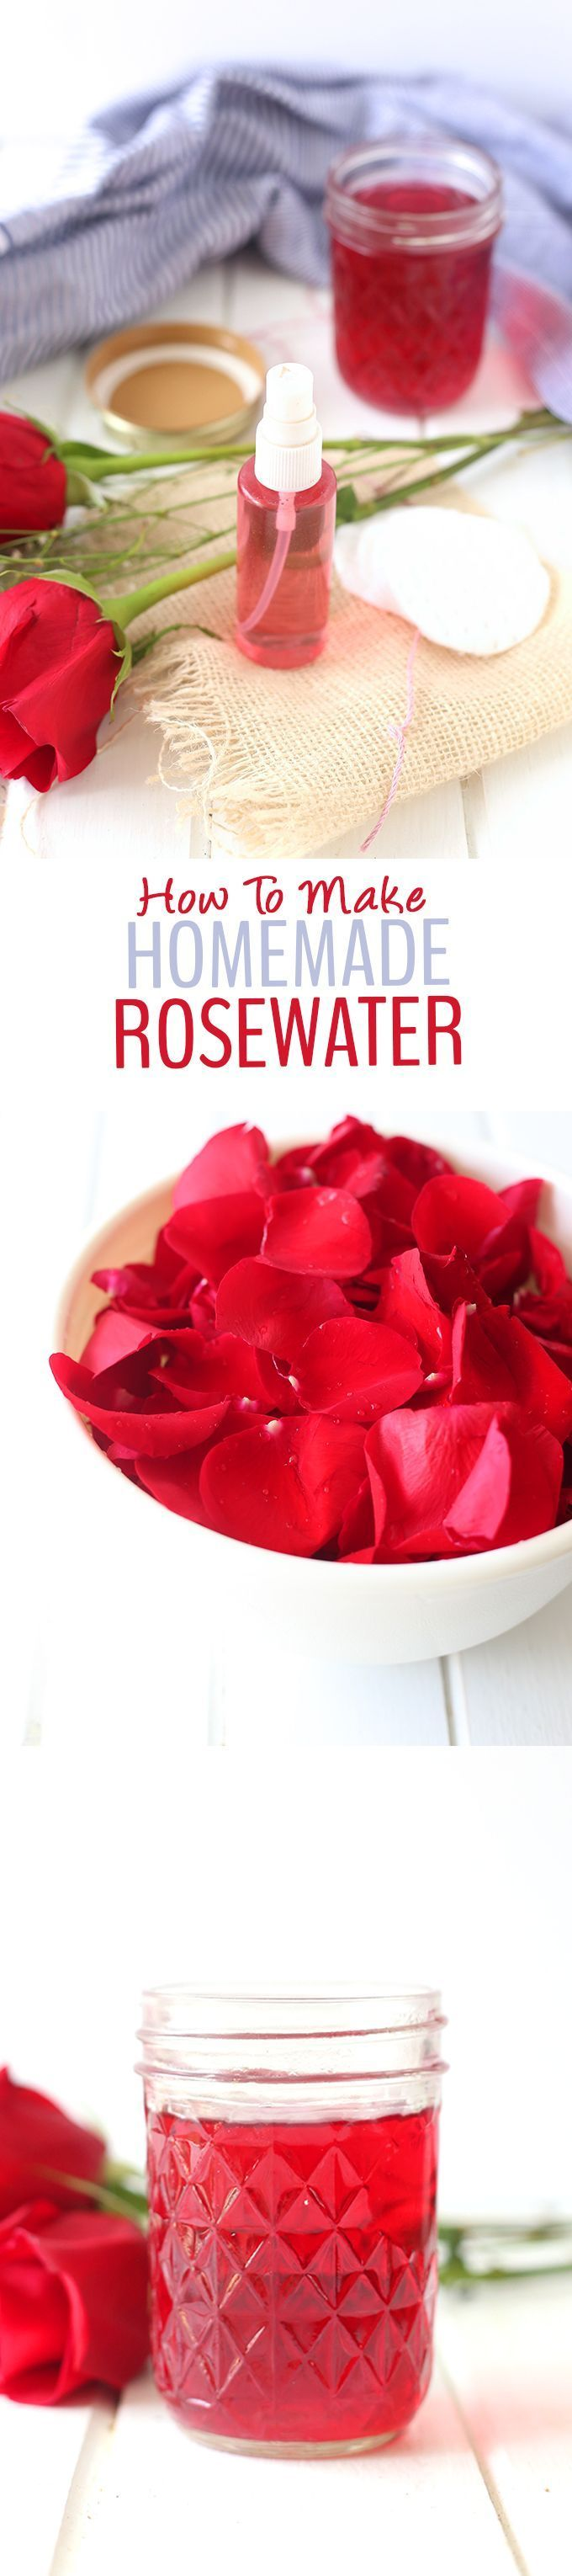 A step-by-step tutorial on how to make homemade rosewater a recipe for DIY Rosewater Face Toner! Youll learn all of the benfits of rosewater for your skin too.